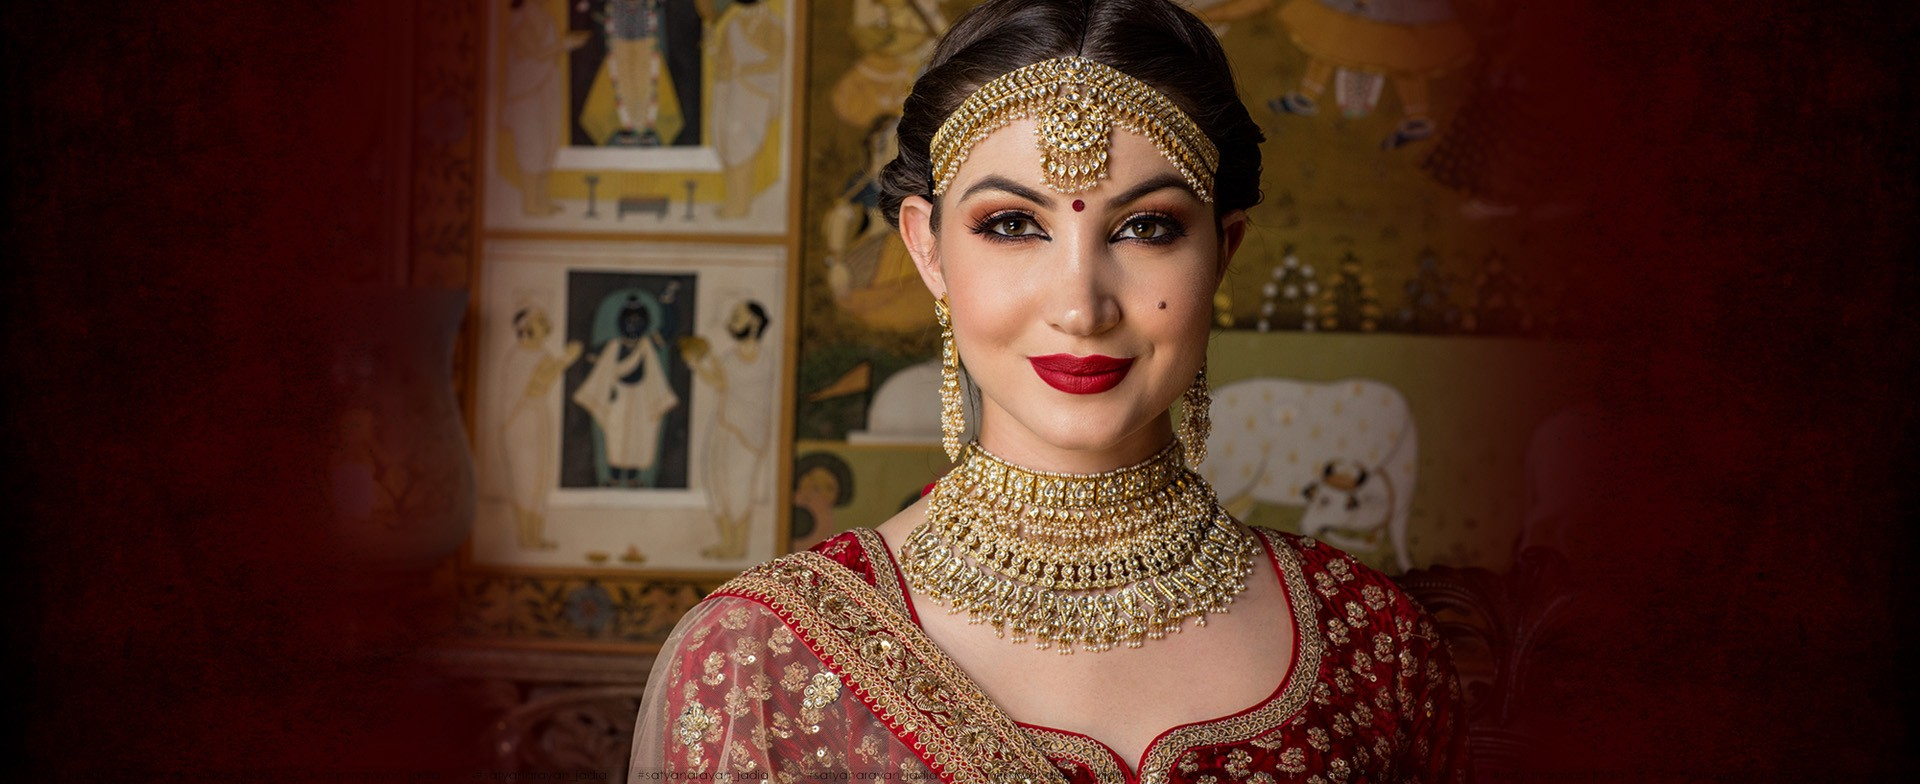 The Royal bridal jewelry